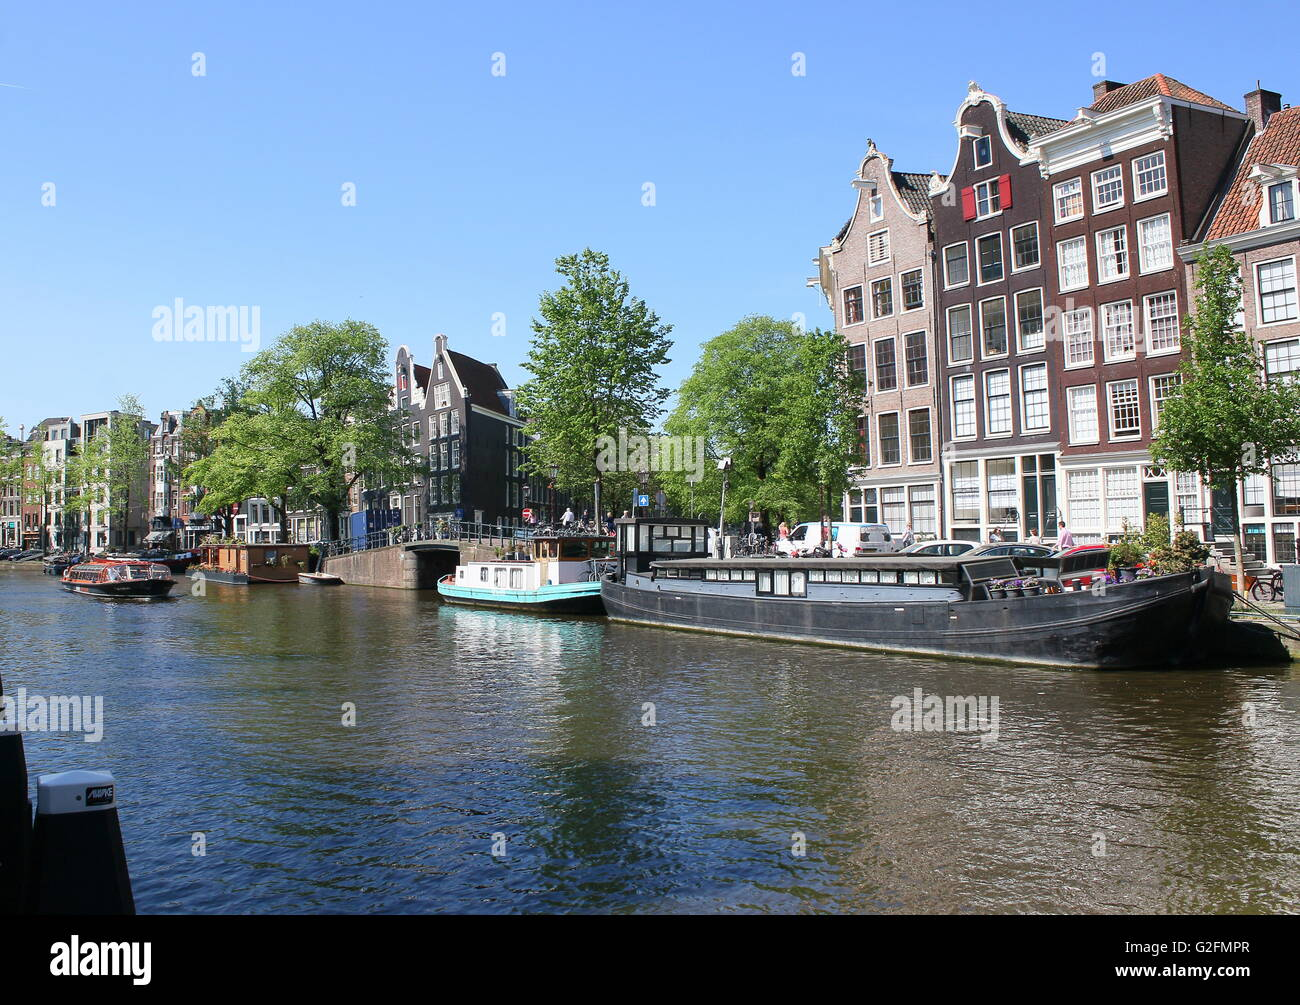 17th and 18th century warehouses and house boats moored along Prinsengracht canal, Amsterdam, the Netherlands. Spring - Stock Image